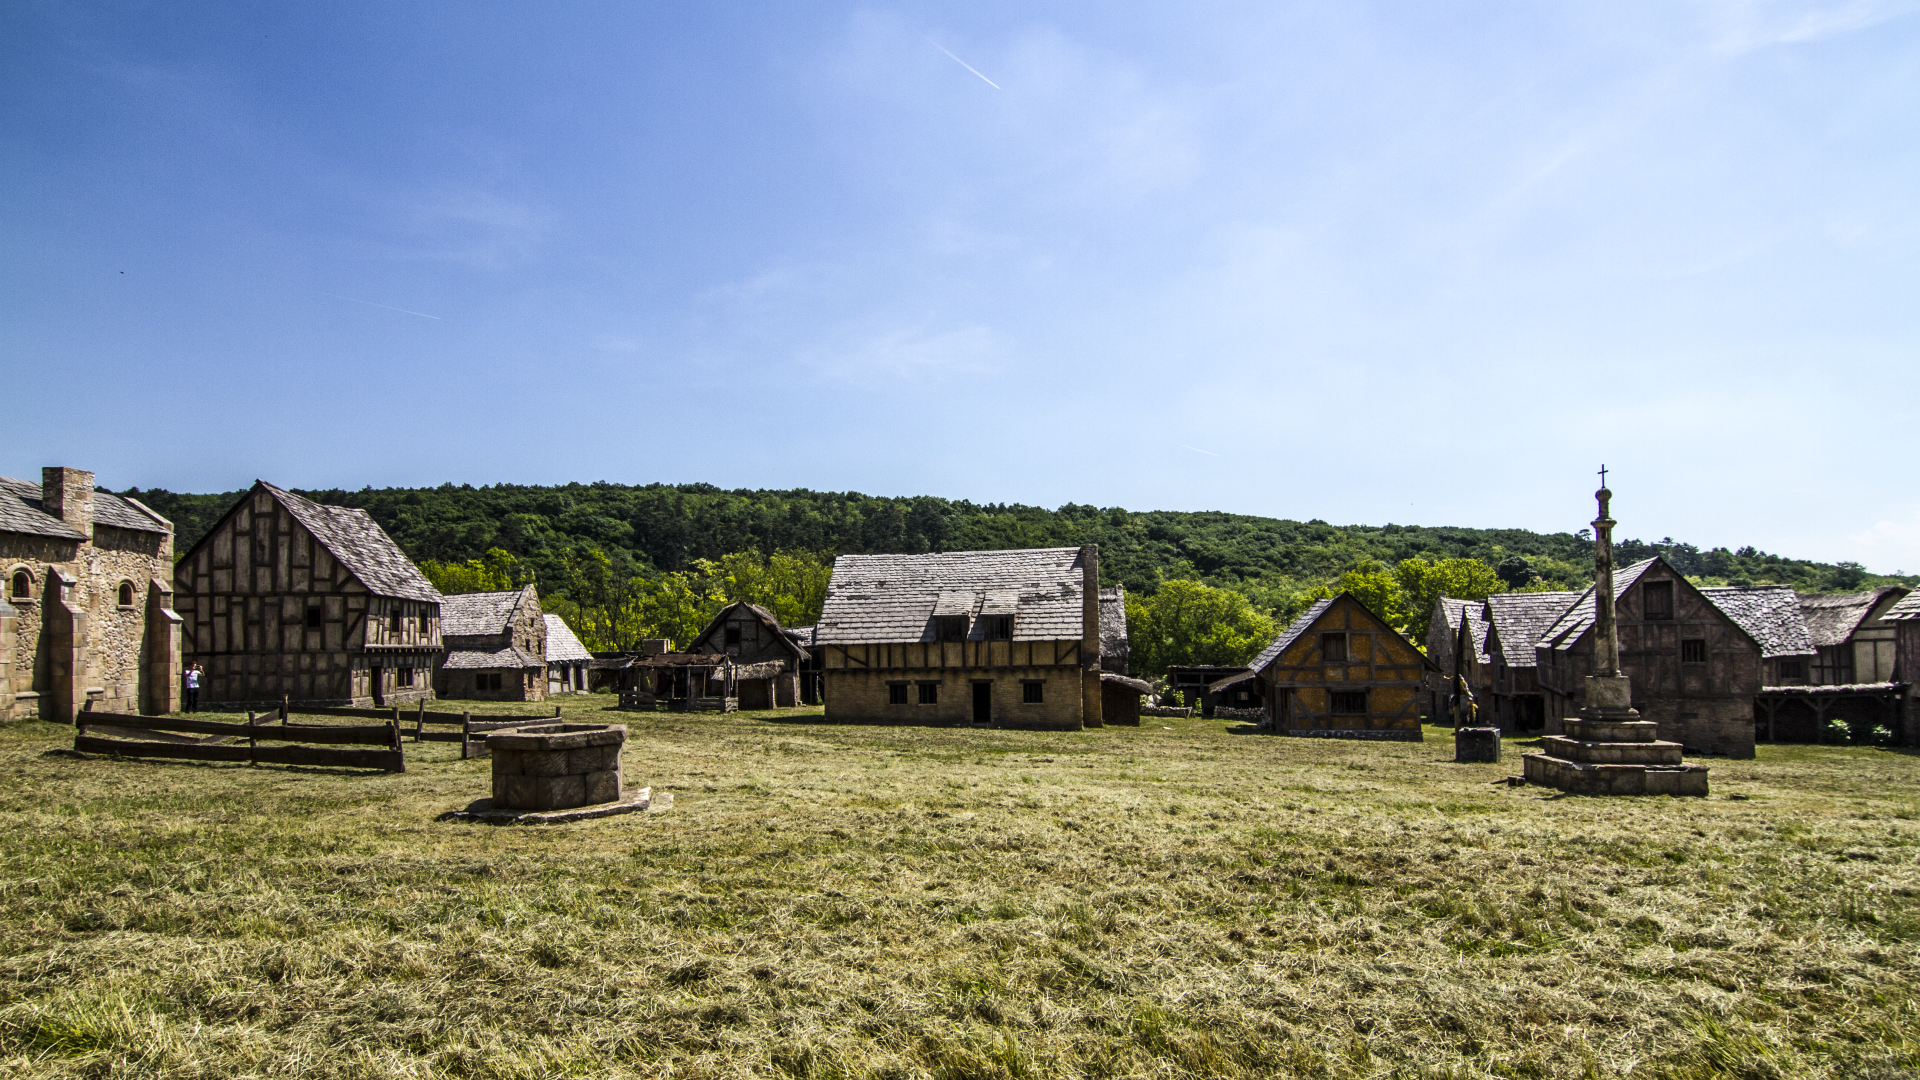 Travel in time to Medieval village